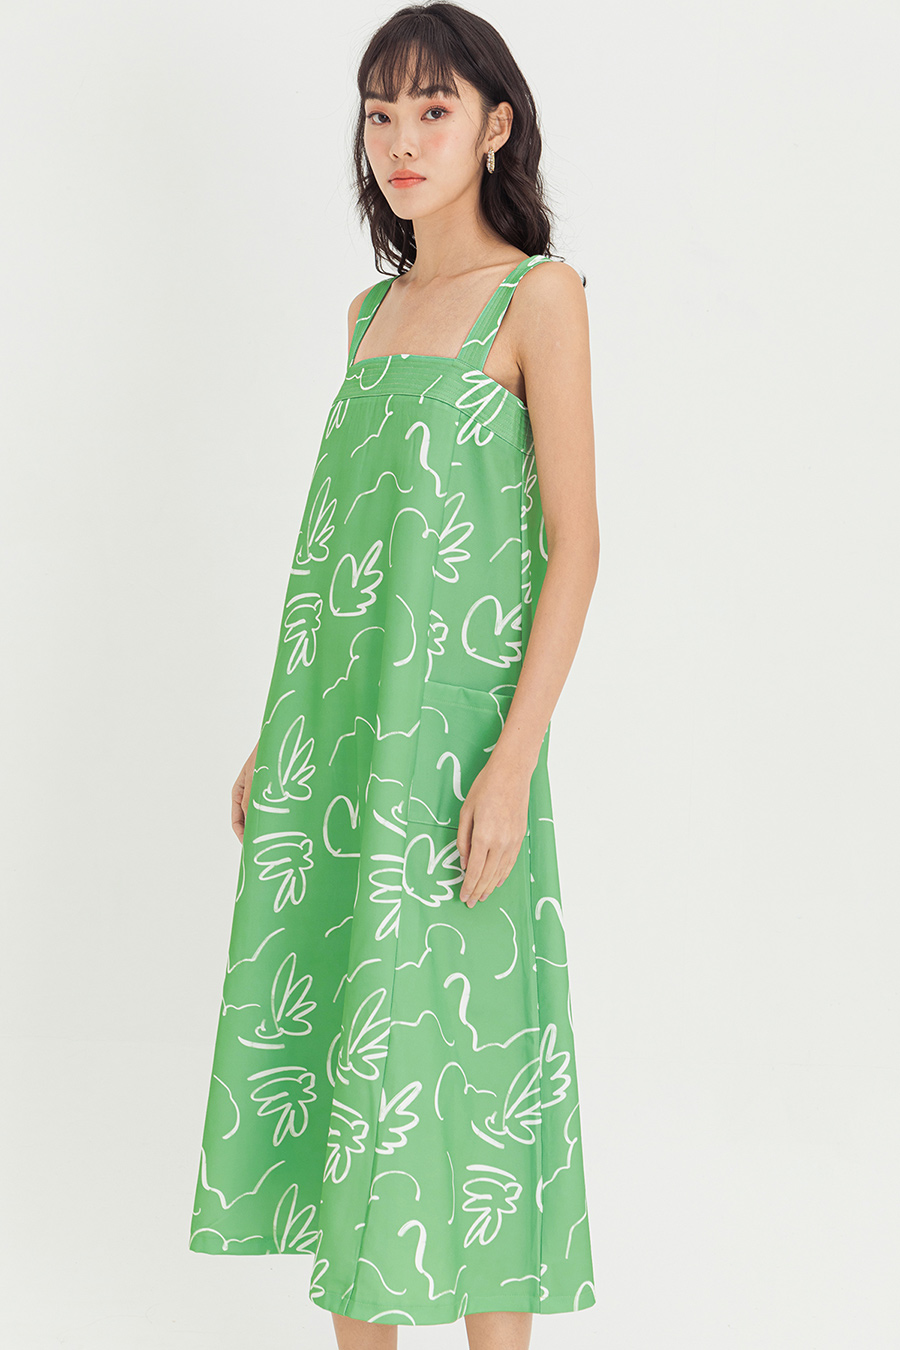 VALLEE DRESS - BOURBON GREEN [BY MODPARADE]